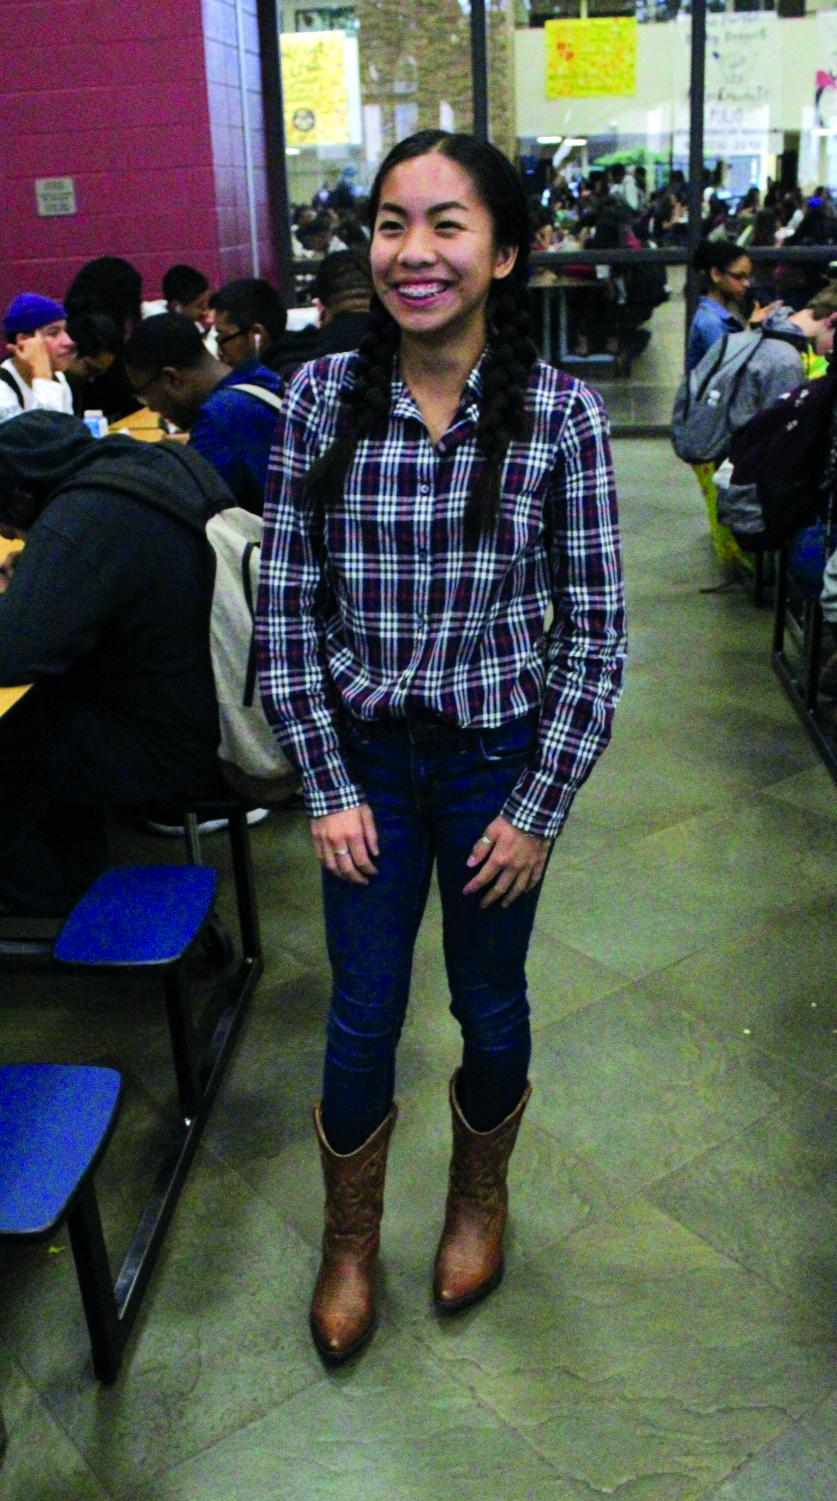 Western+Boots+Day%21